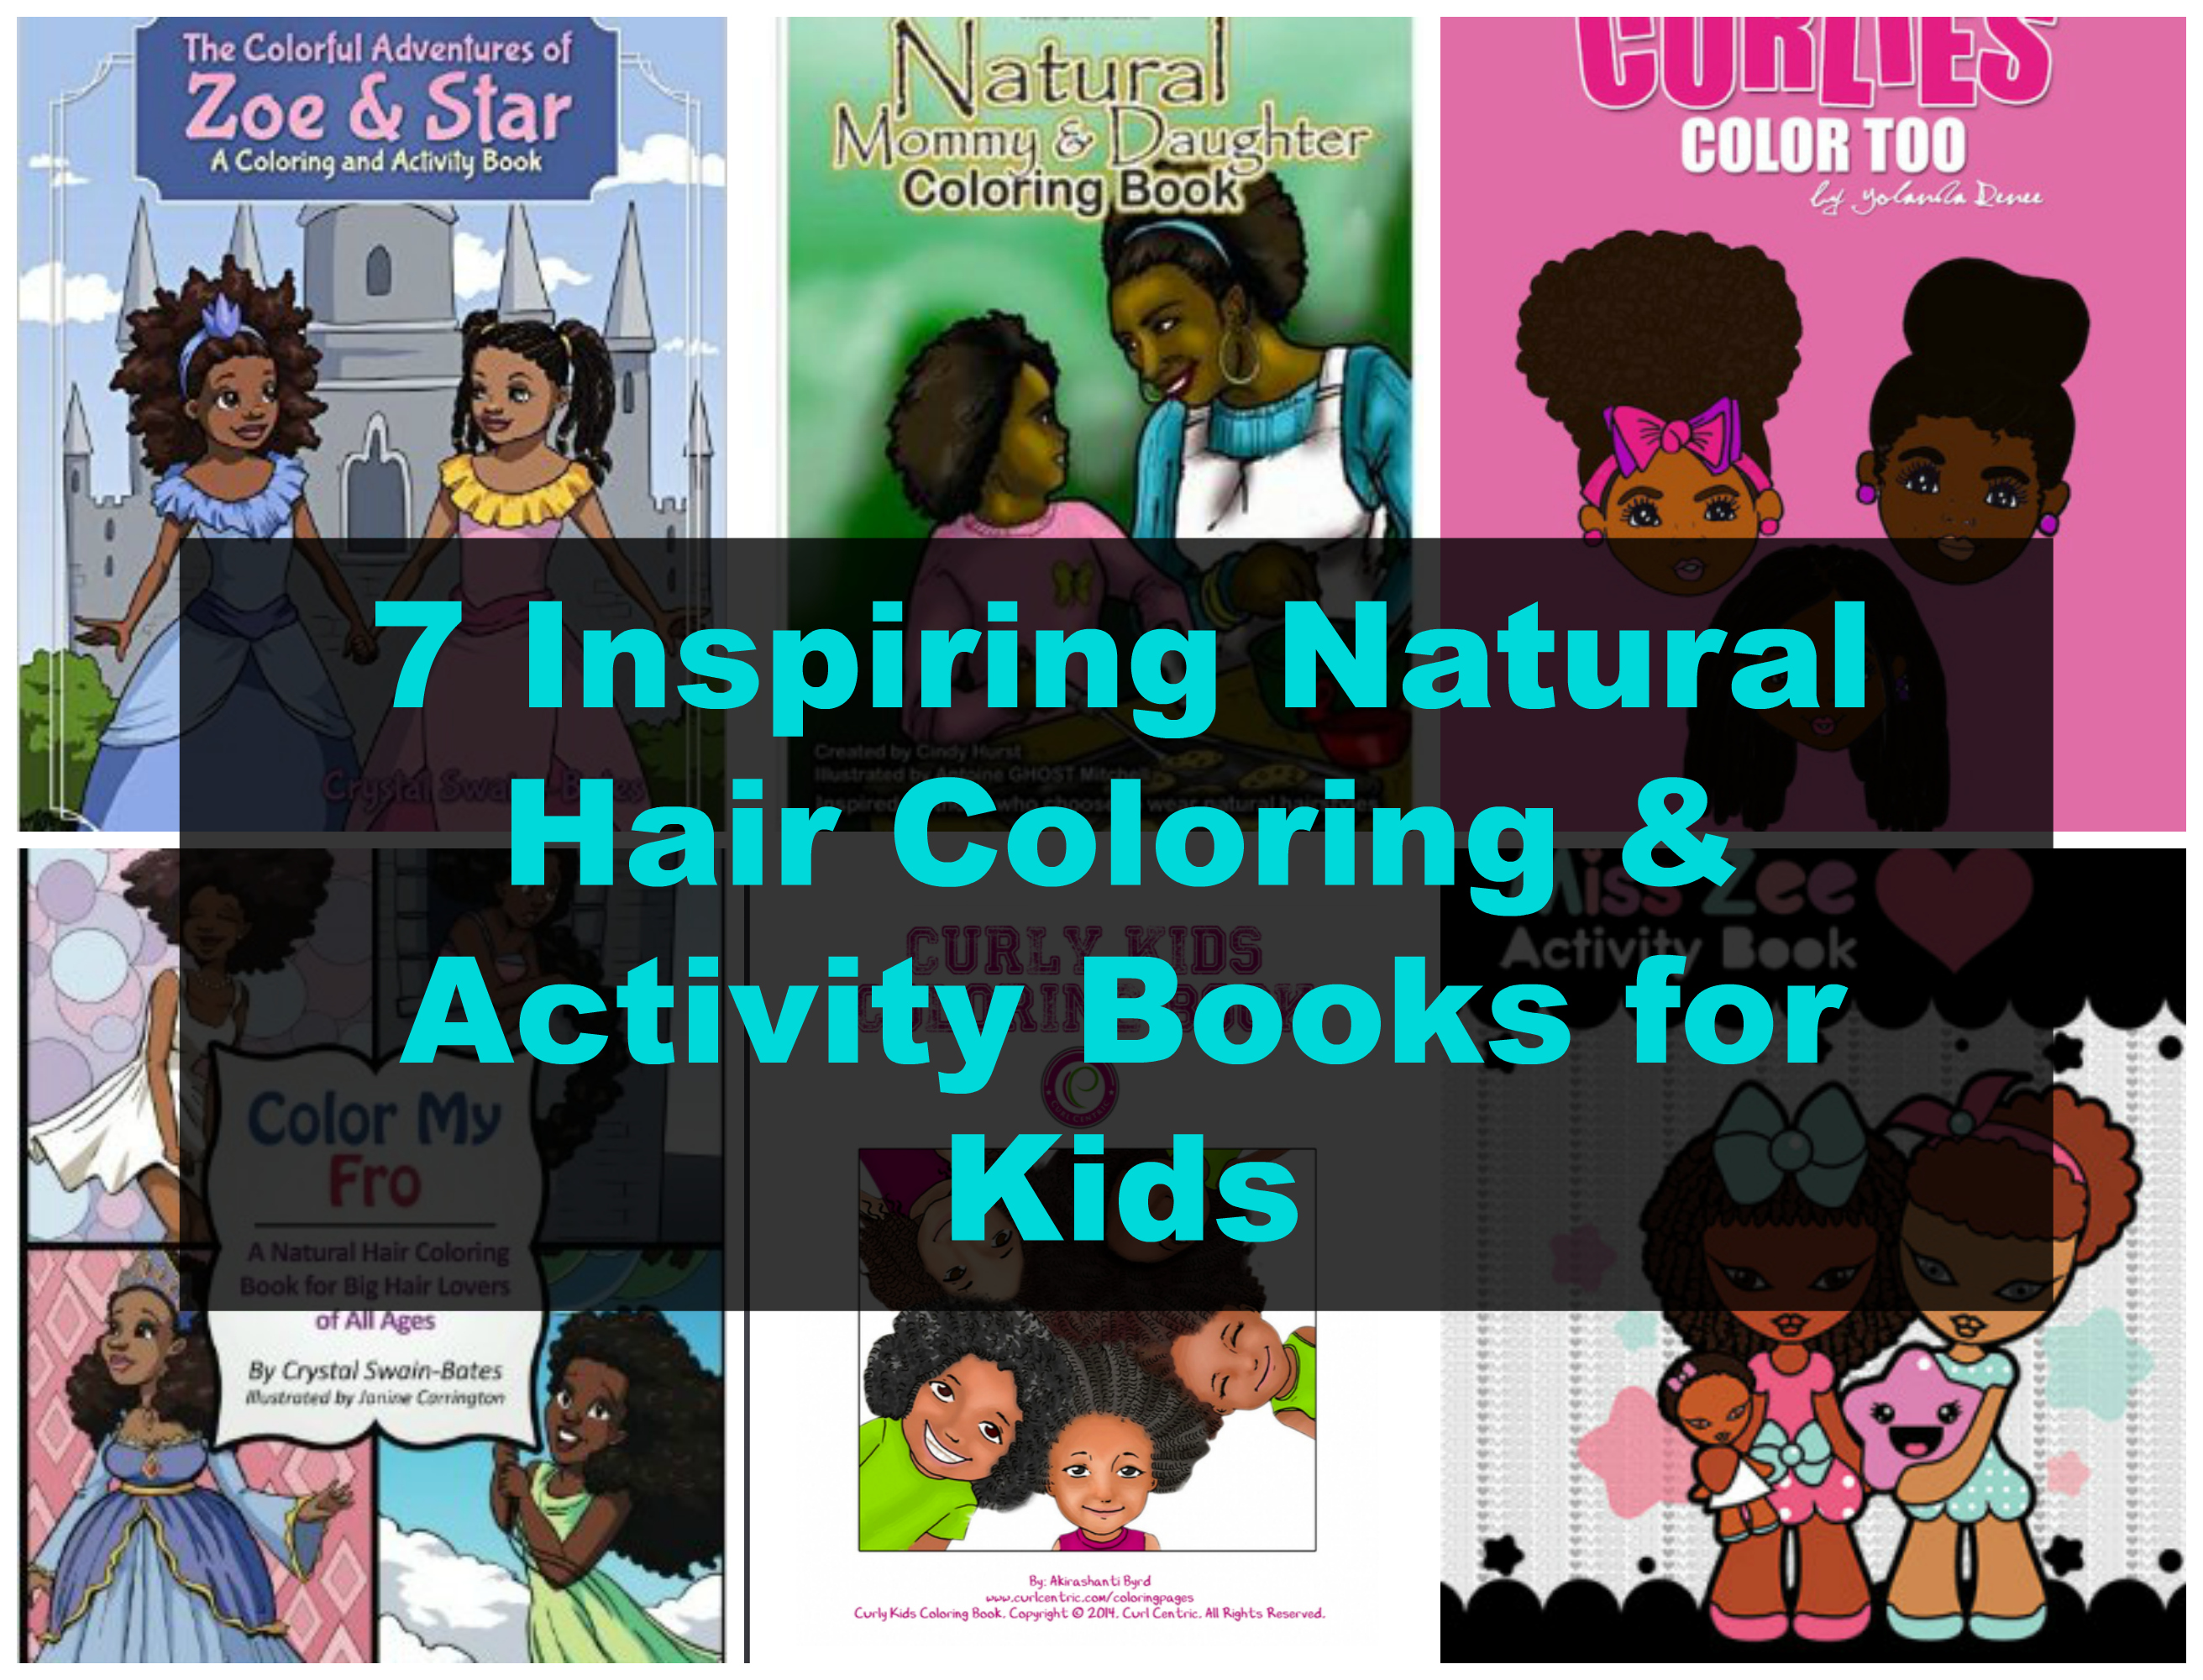 7 Inspiring Natural Hair Coloring & Activity Books For Kids